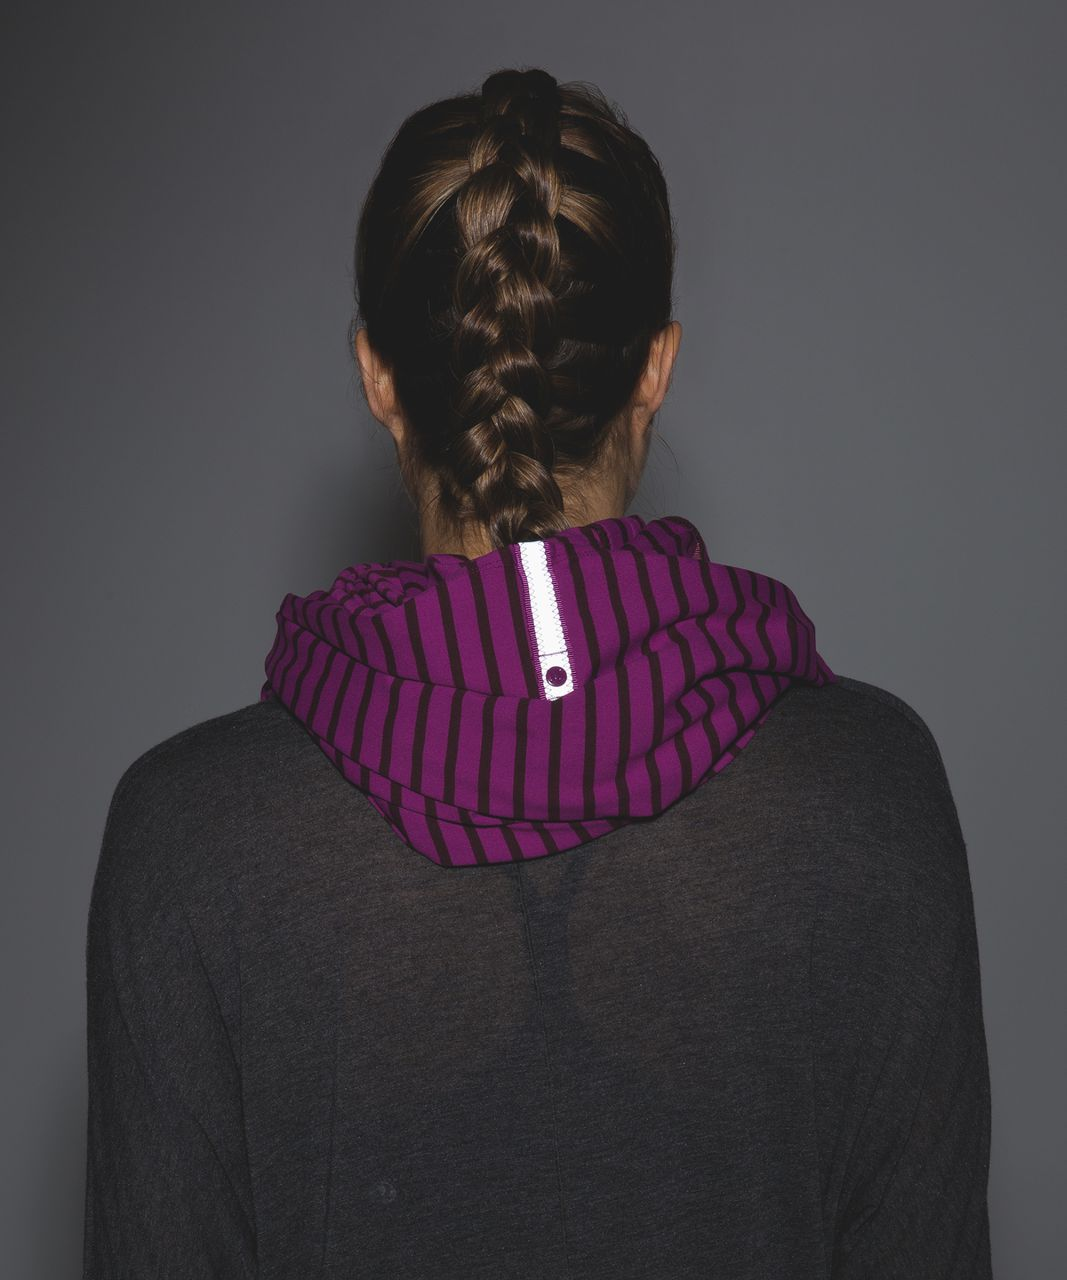 Lululemon Vinyasa Scarf - Deenie Stripe Regal Plum Bordeaux Drama